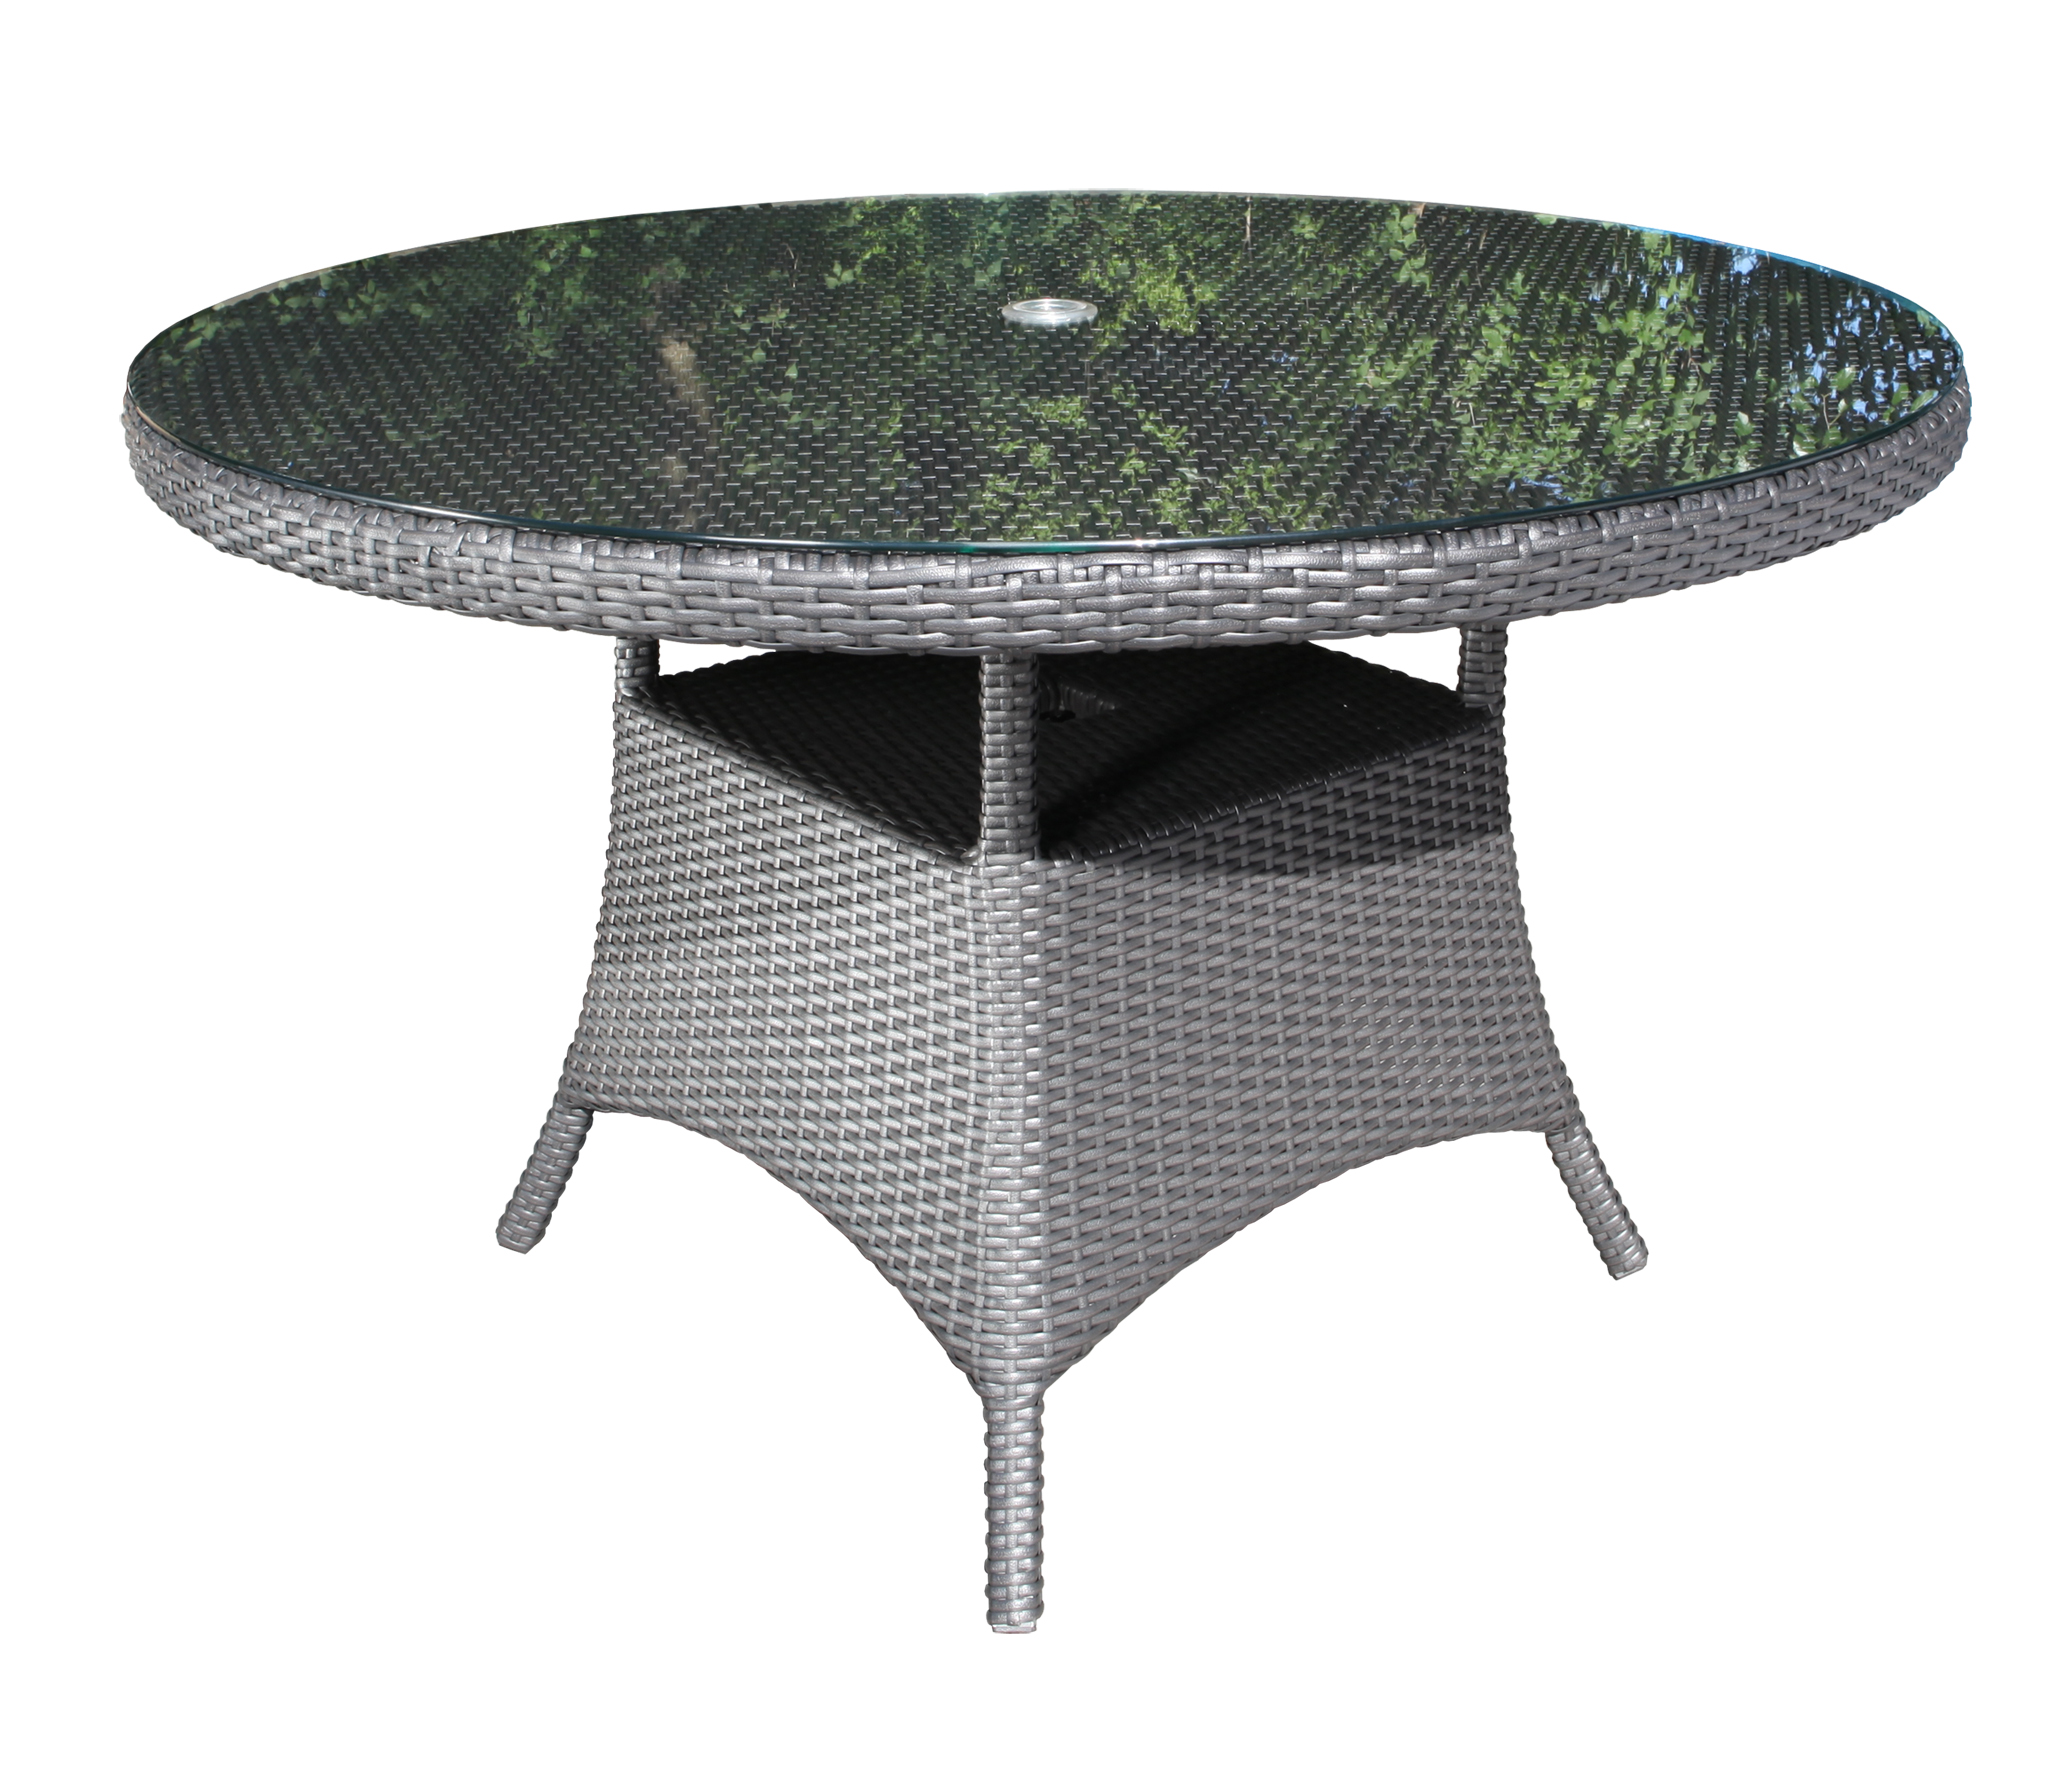 Solano Round Wicker 48 Quot Dining Table Patio Furniture At